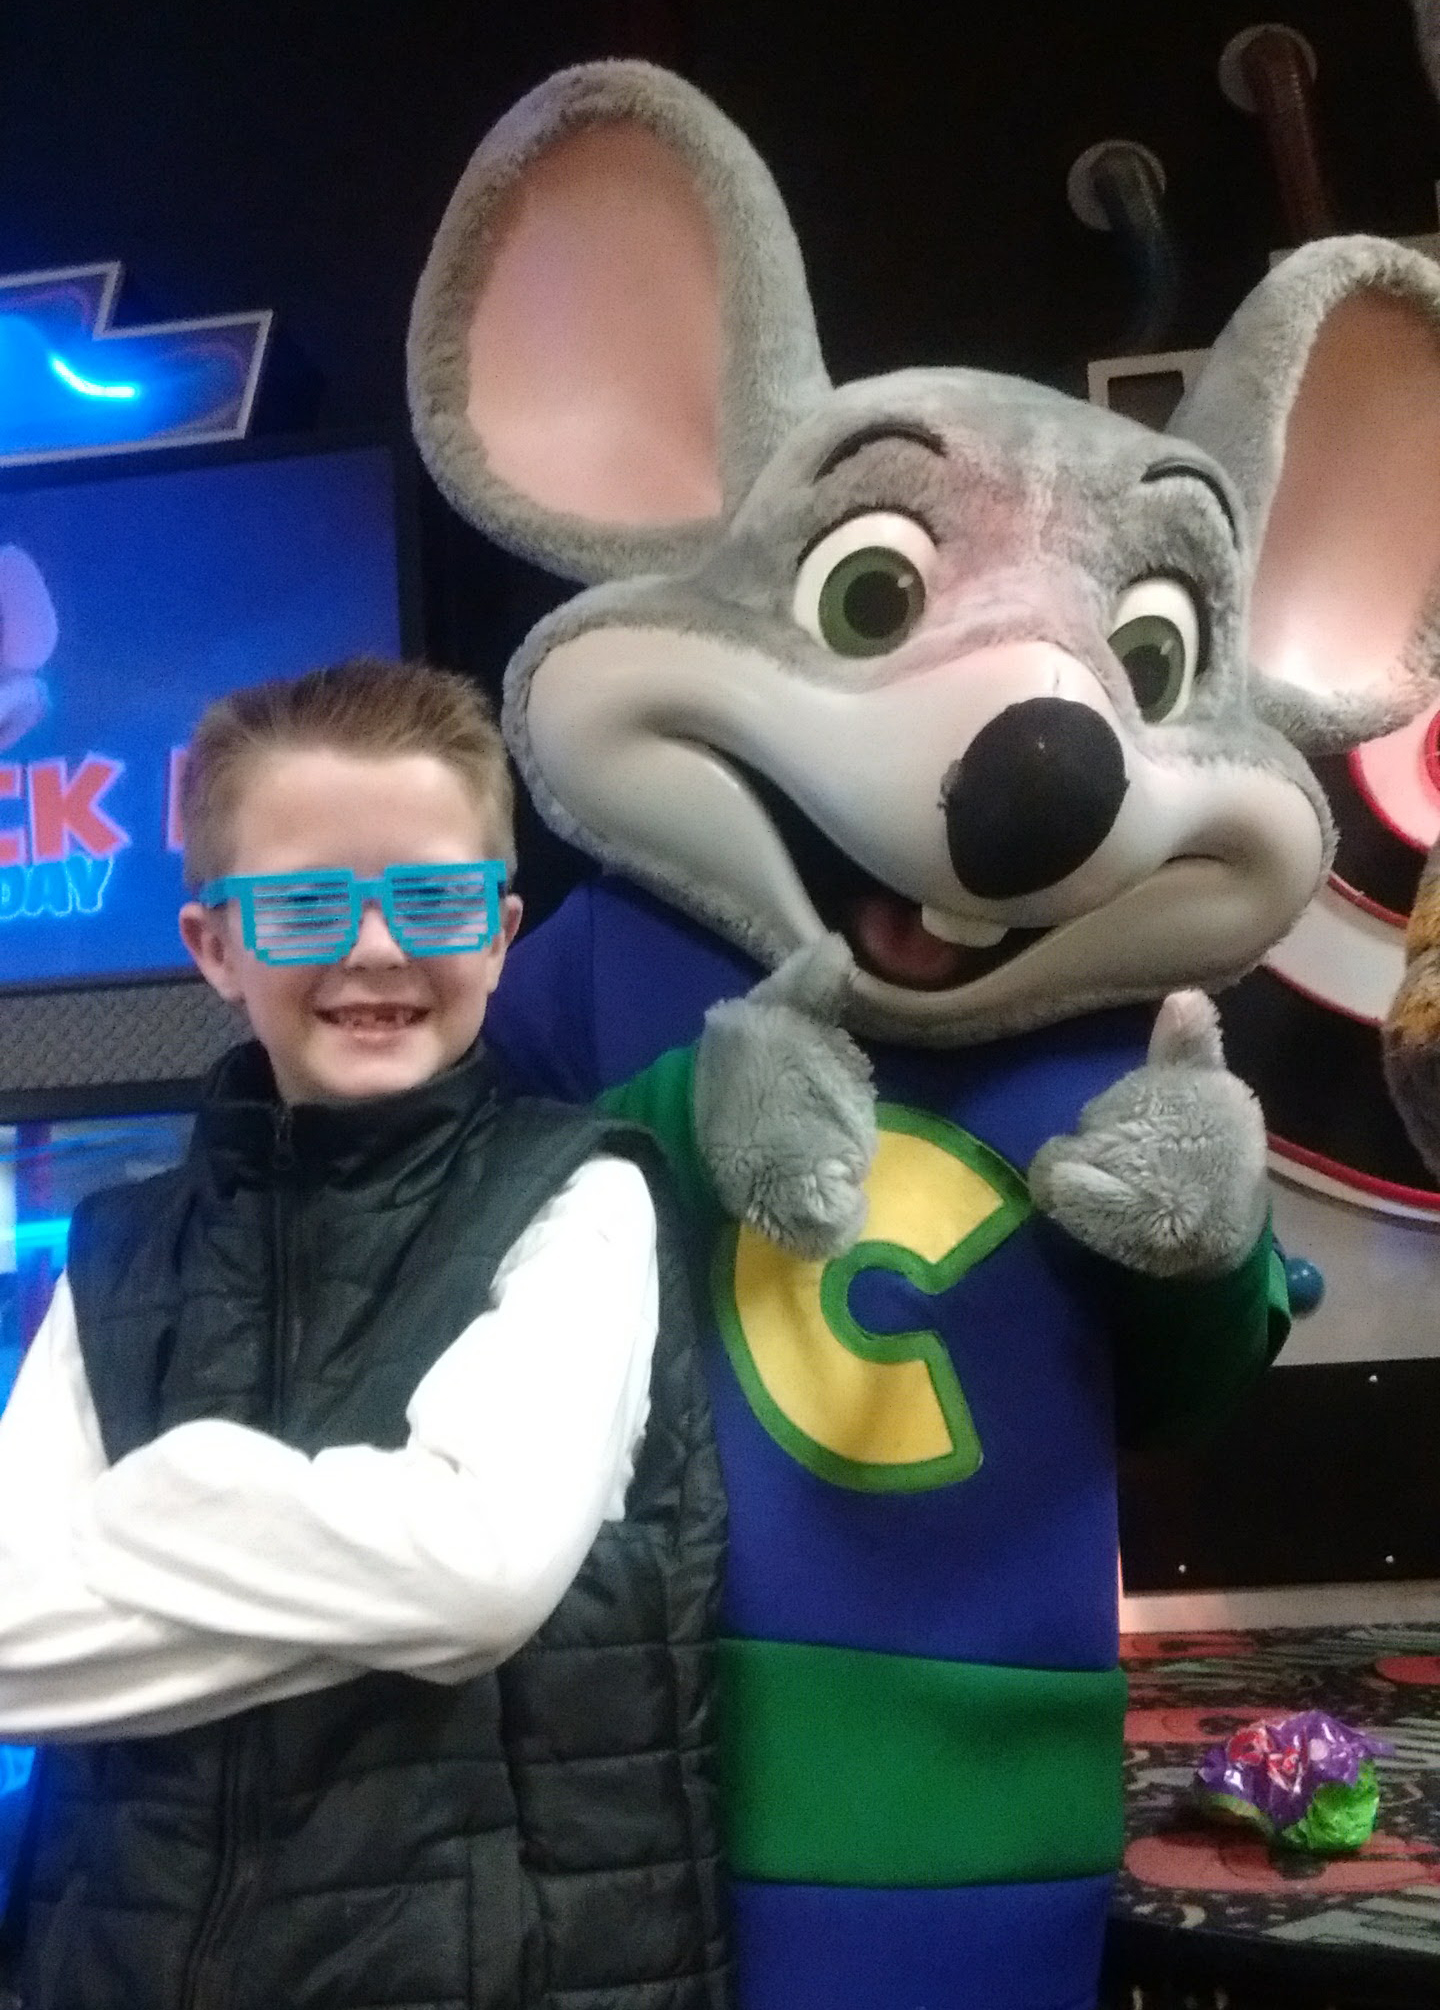 birthday, Chuck E. Cheese's